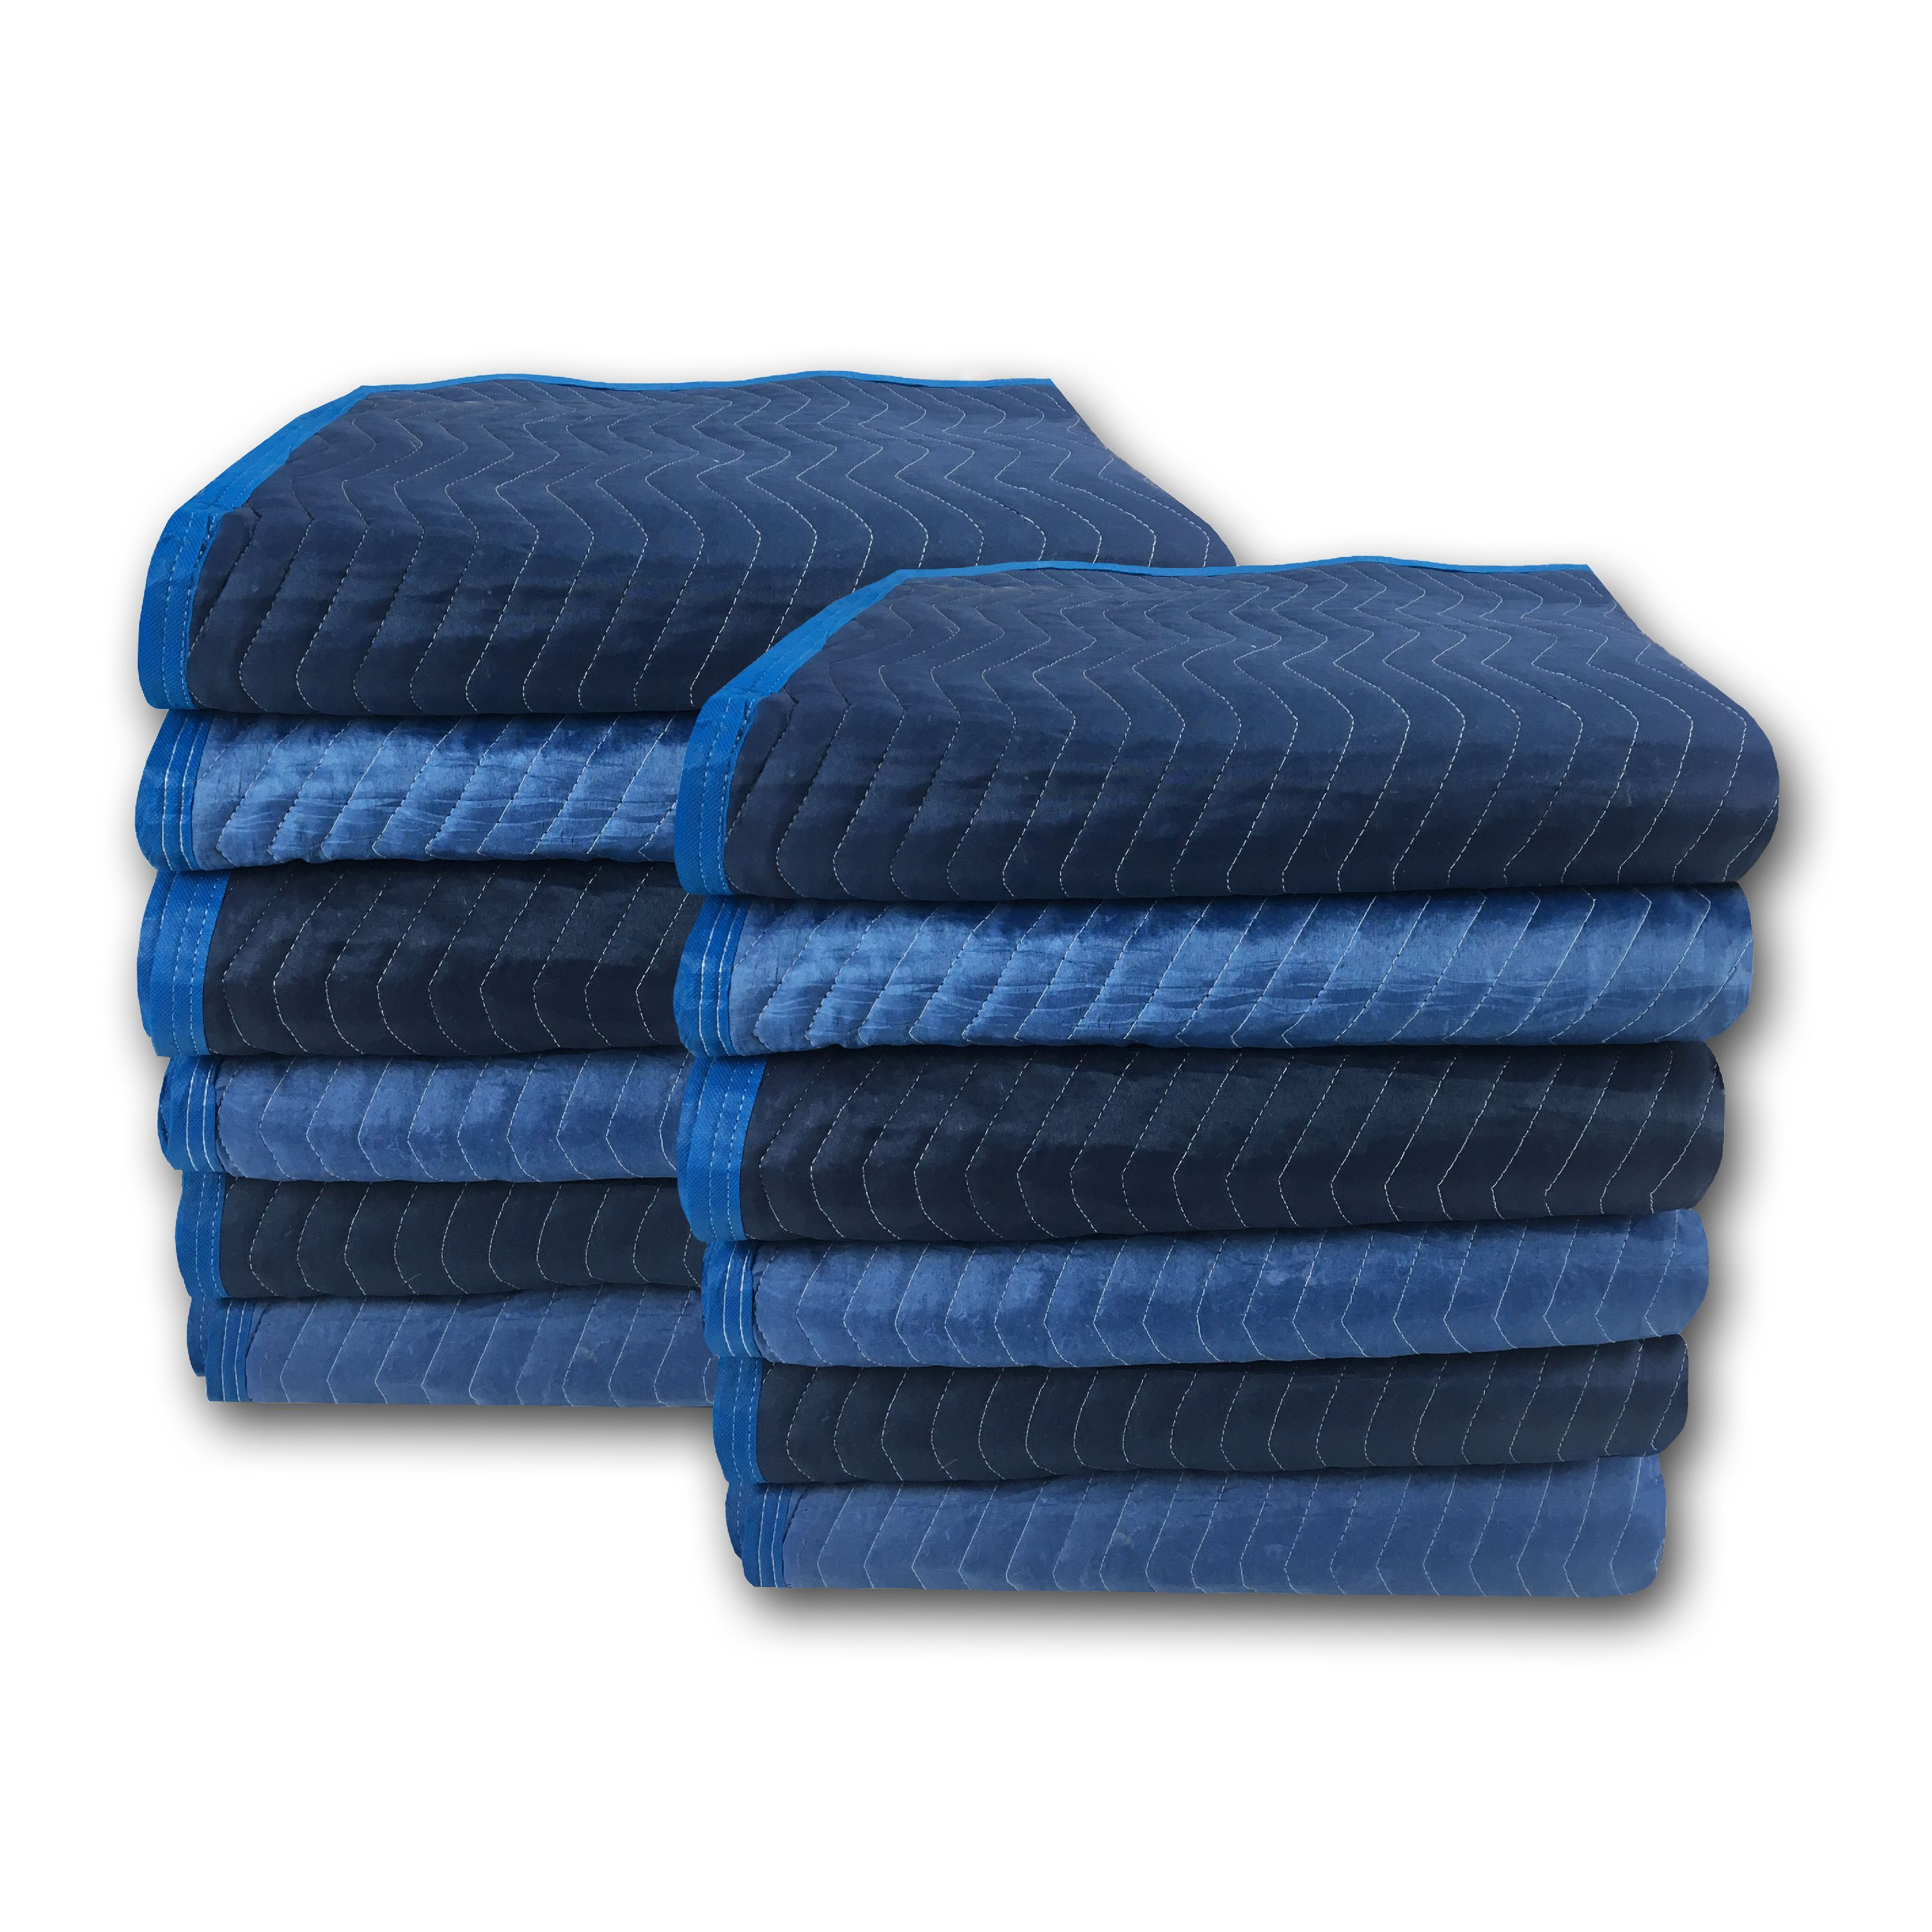 Uboxes Super Supreme Moving Blankets, 72 x 80 in, 7.92lbs each, 12 Pack